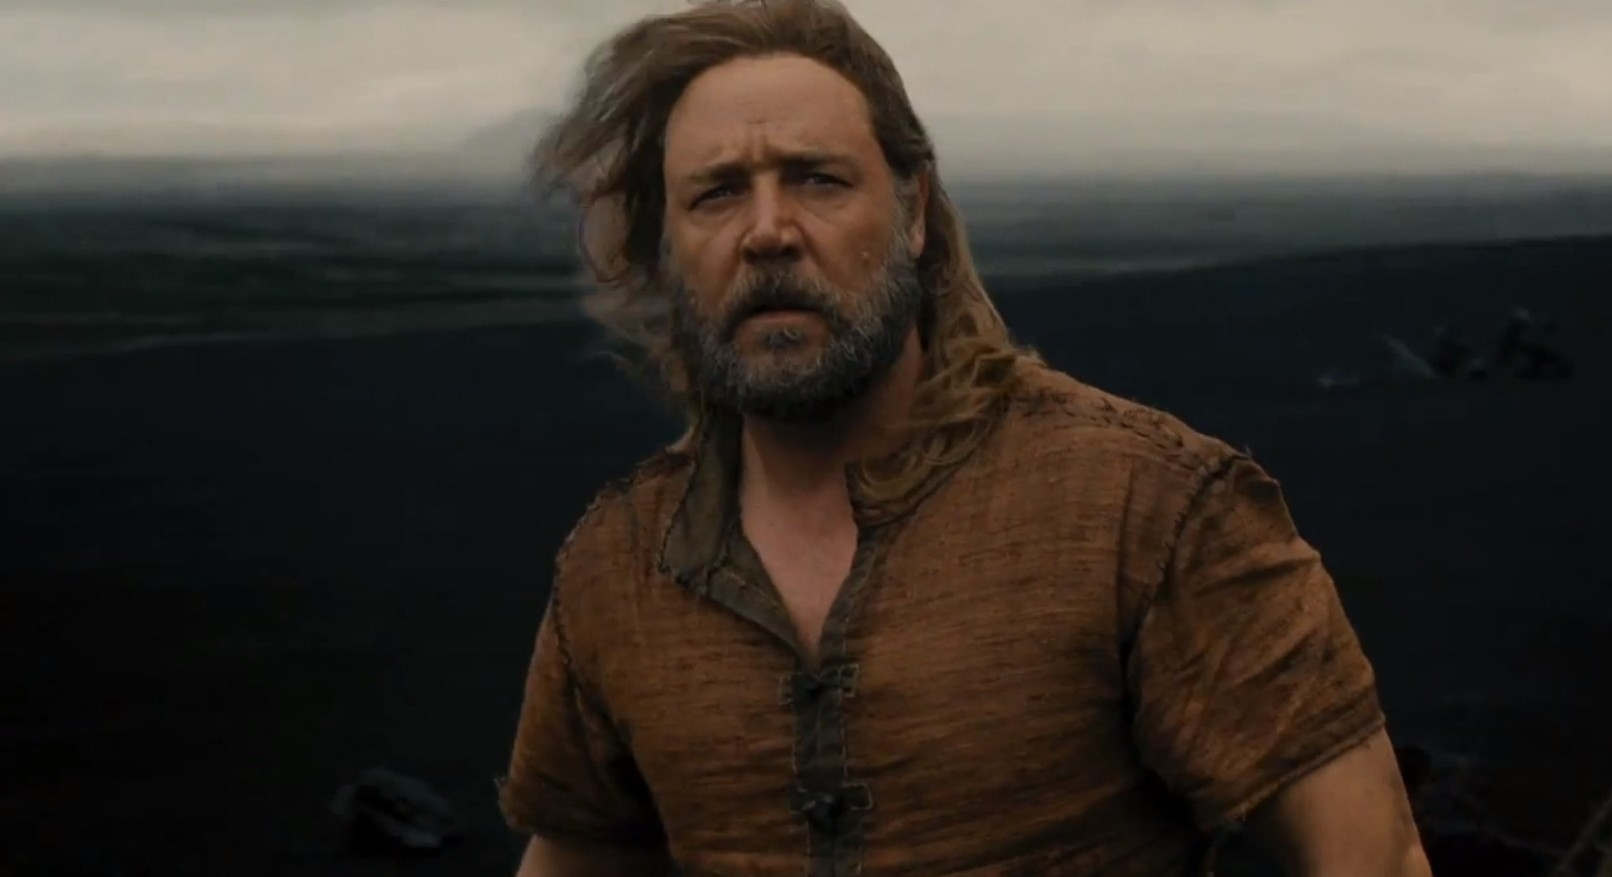 Russell Crowe stars as Noah in Darren Aronofsky's new film (Picture: YouTube)